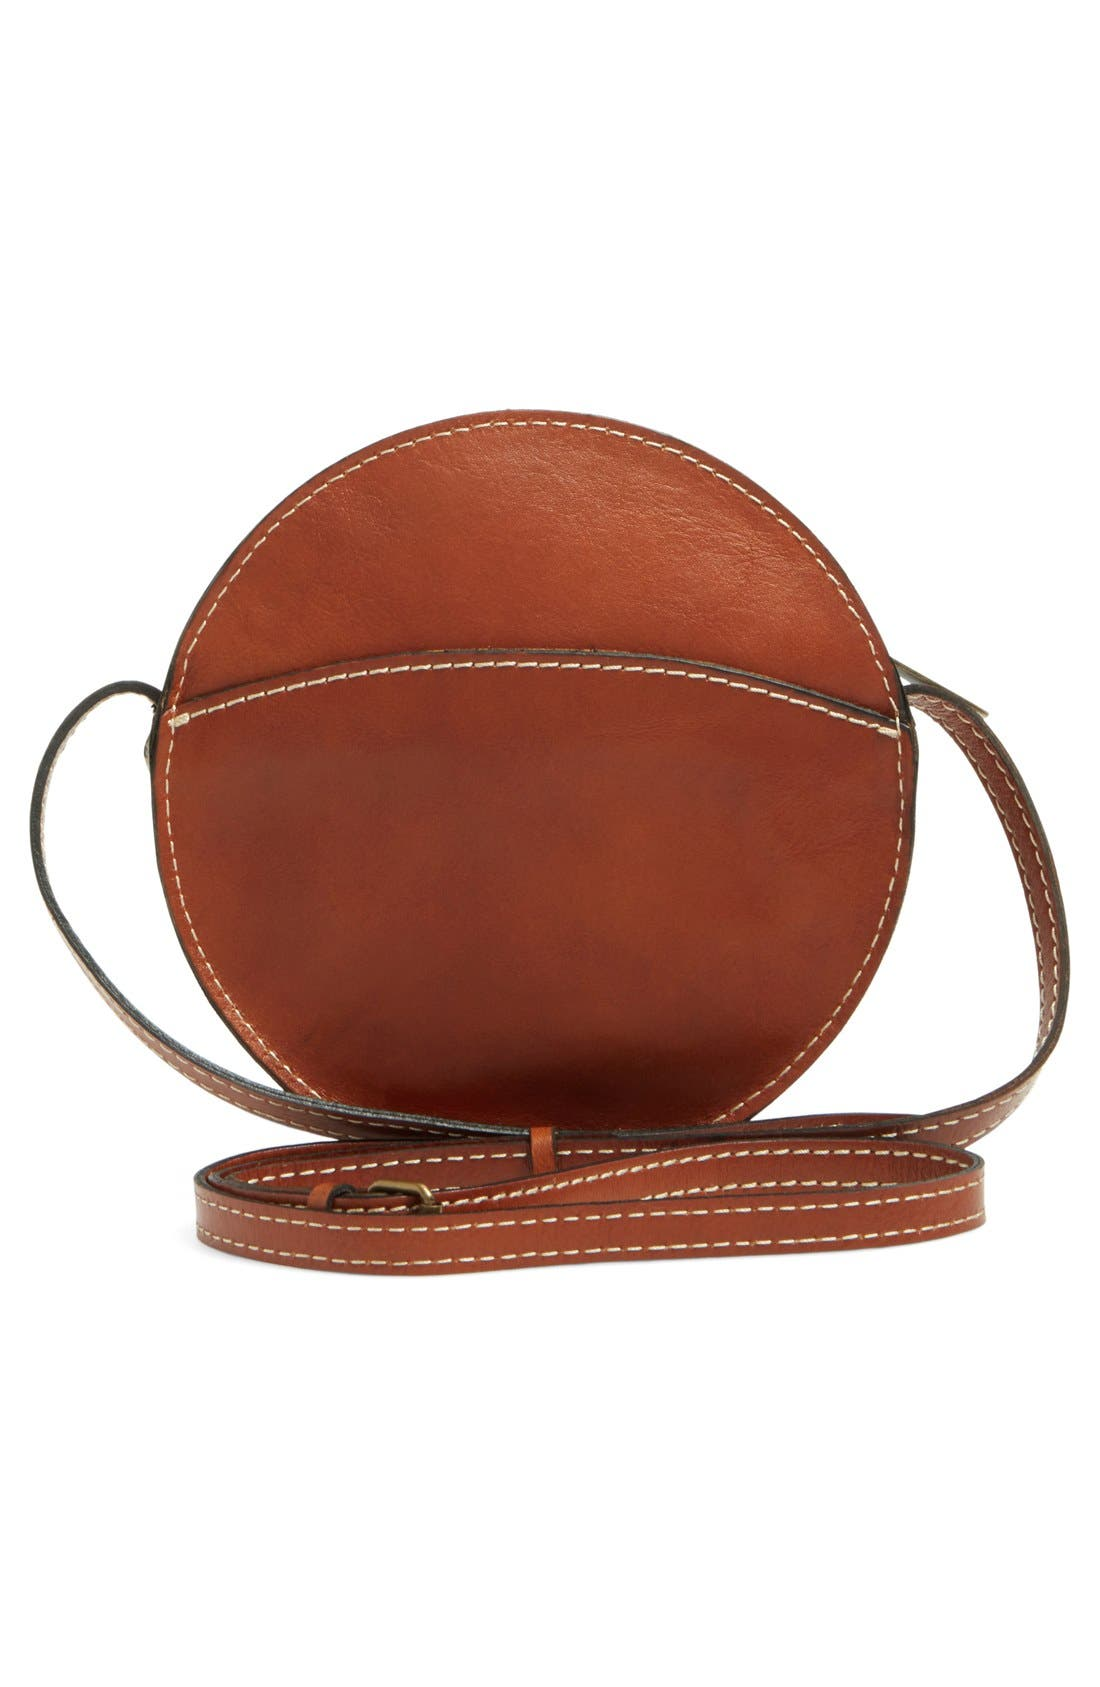 Alternate Image 3  - Patricia Nash 'Small Scafati' Leather Crossbody Bag